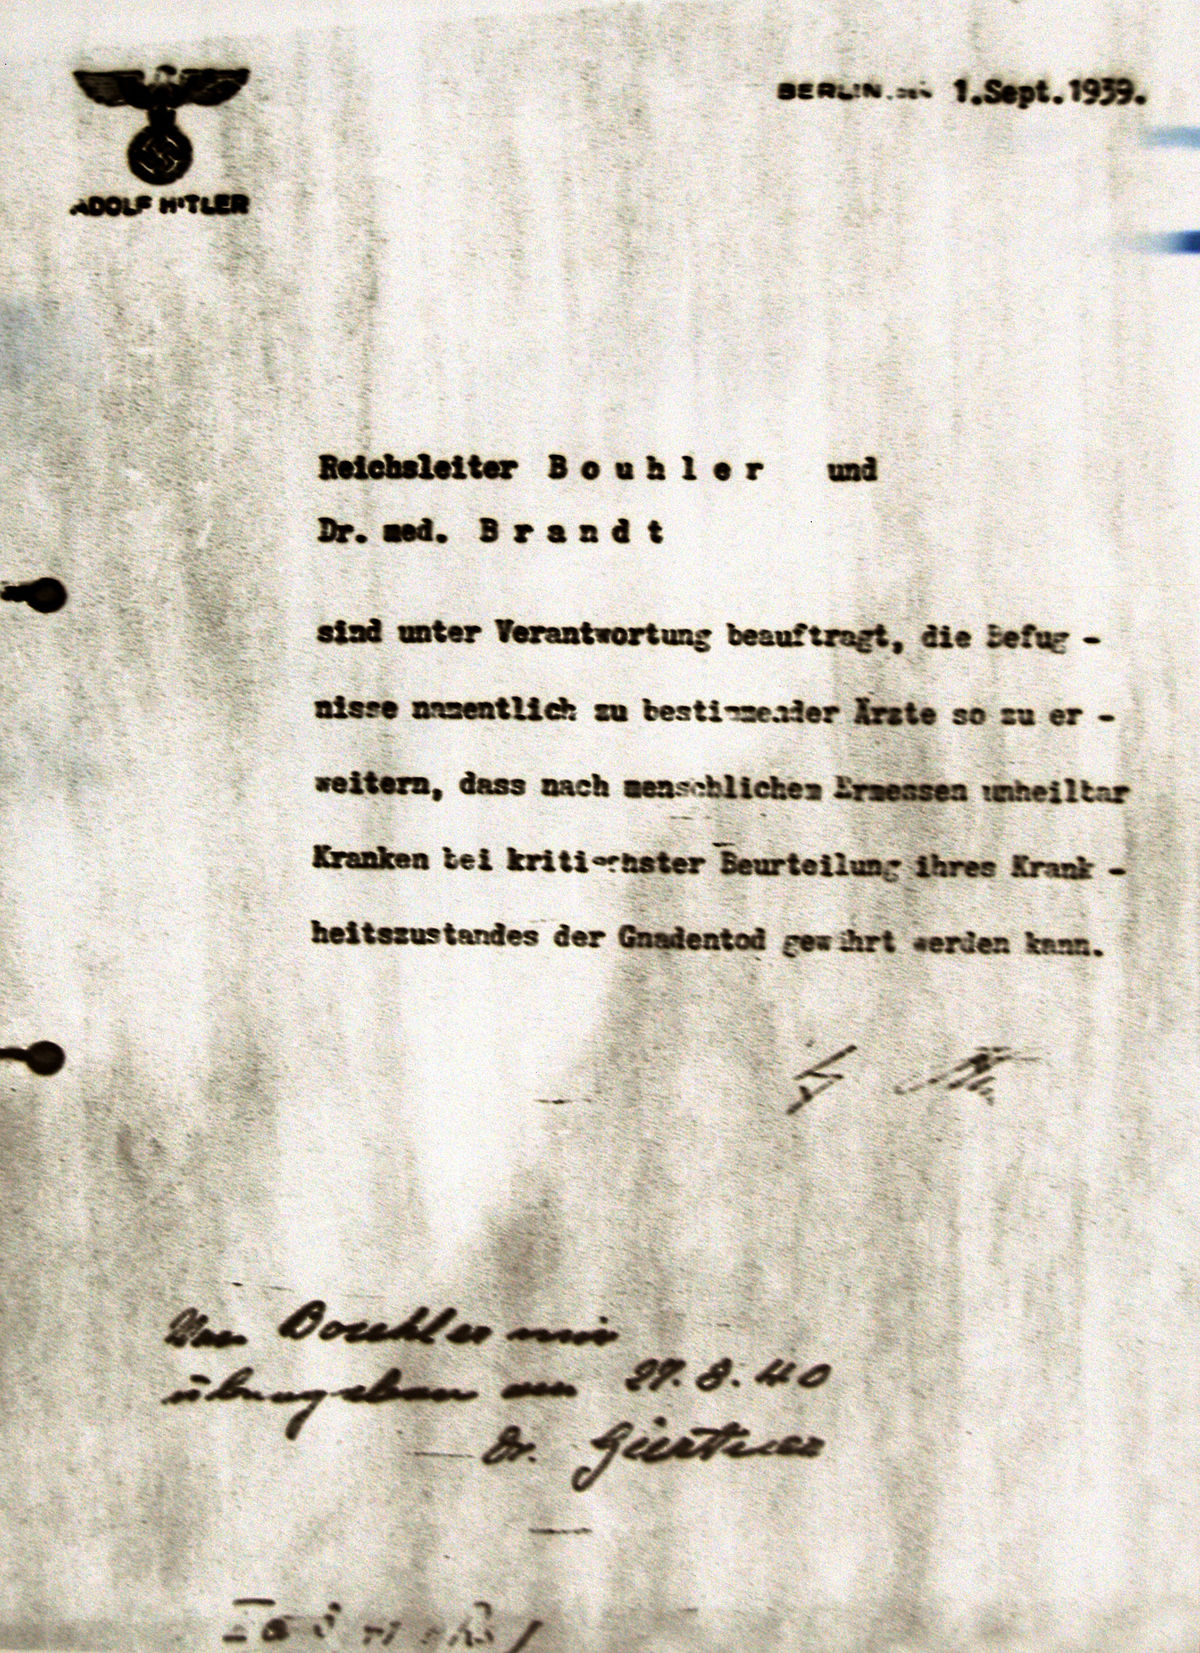 an introduction to the history of the nazi euthanasia program The german t4 euthanasia program is nearly hidden within history, an event   starting at the conclusion of world war i—when scientists from.